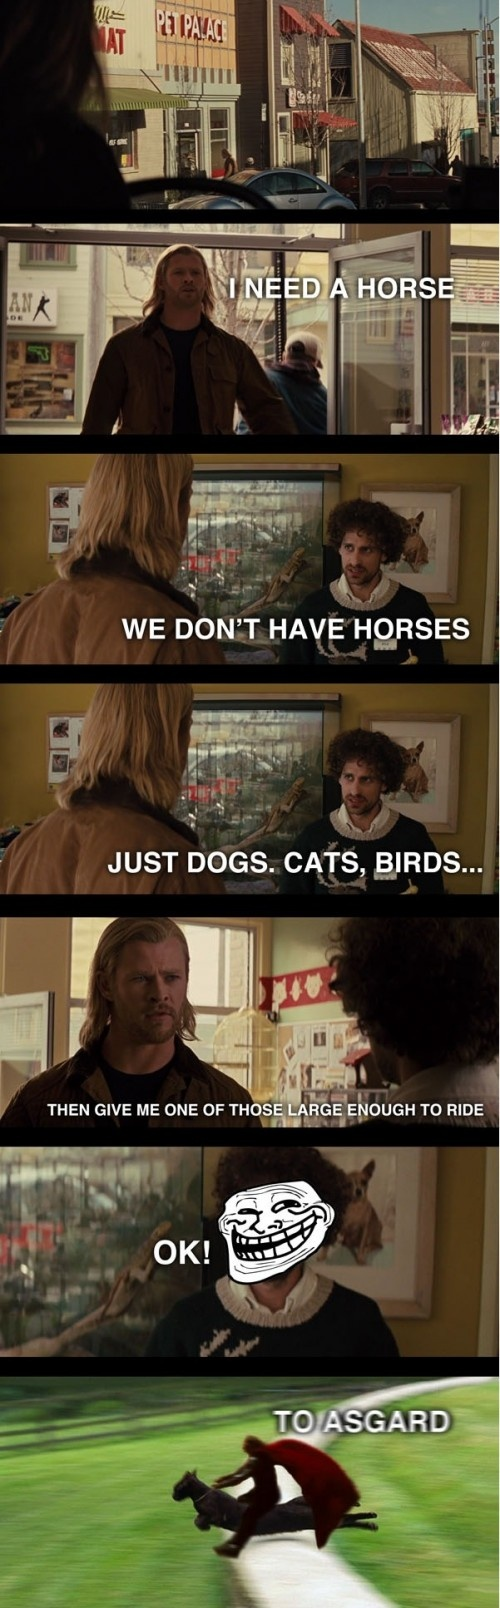 Lolz Thor, this is my favorite scene to quote.